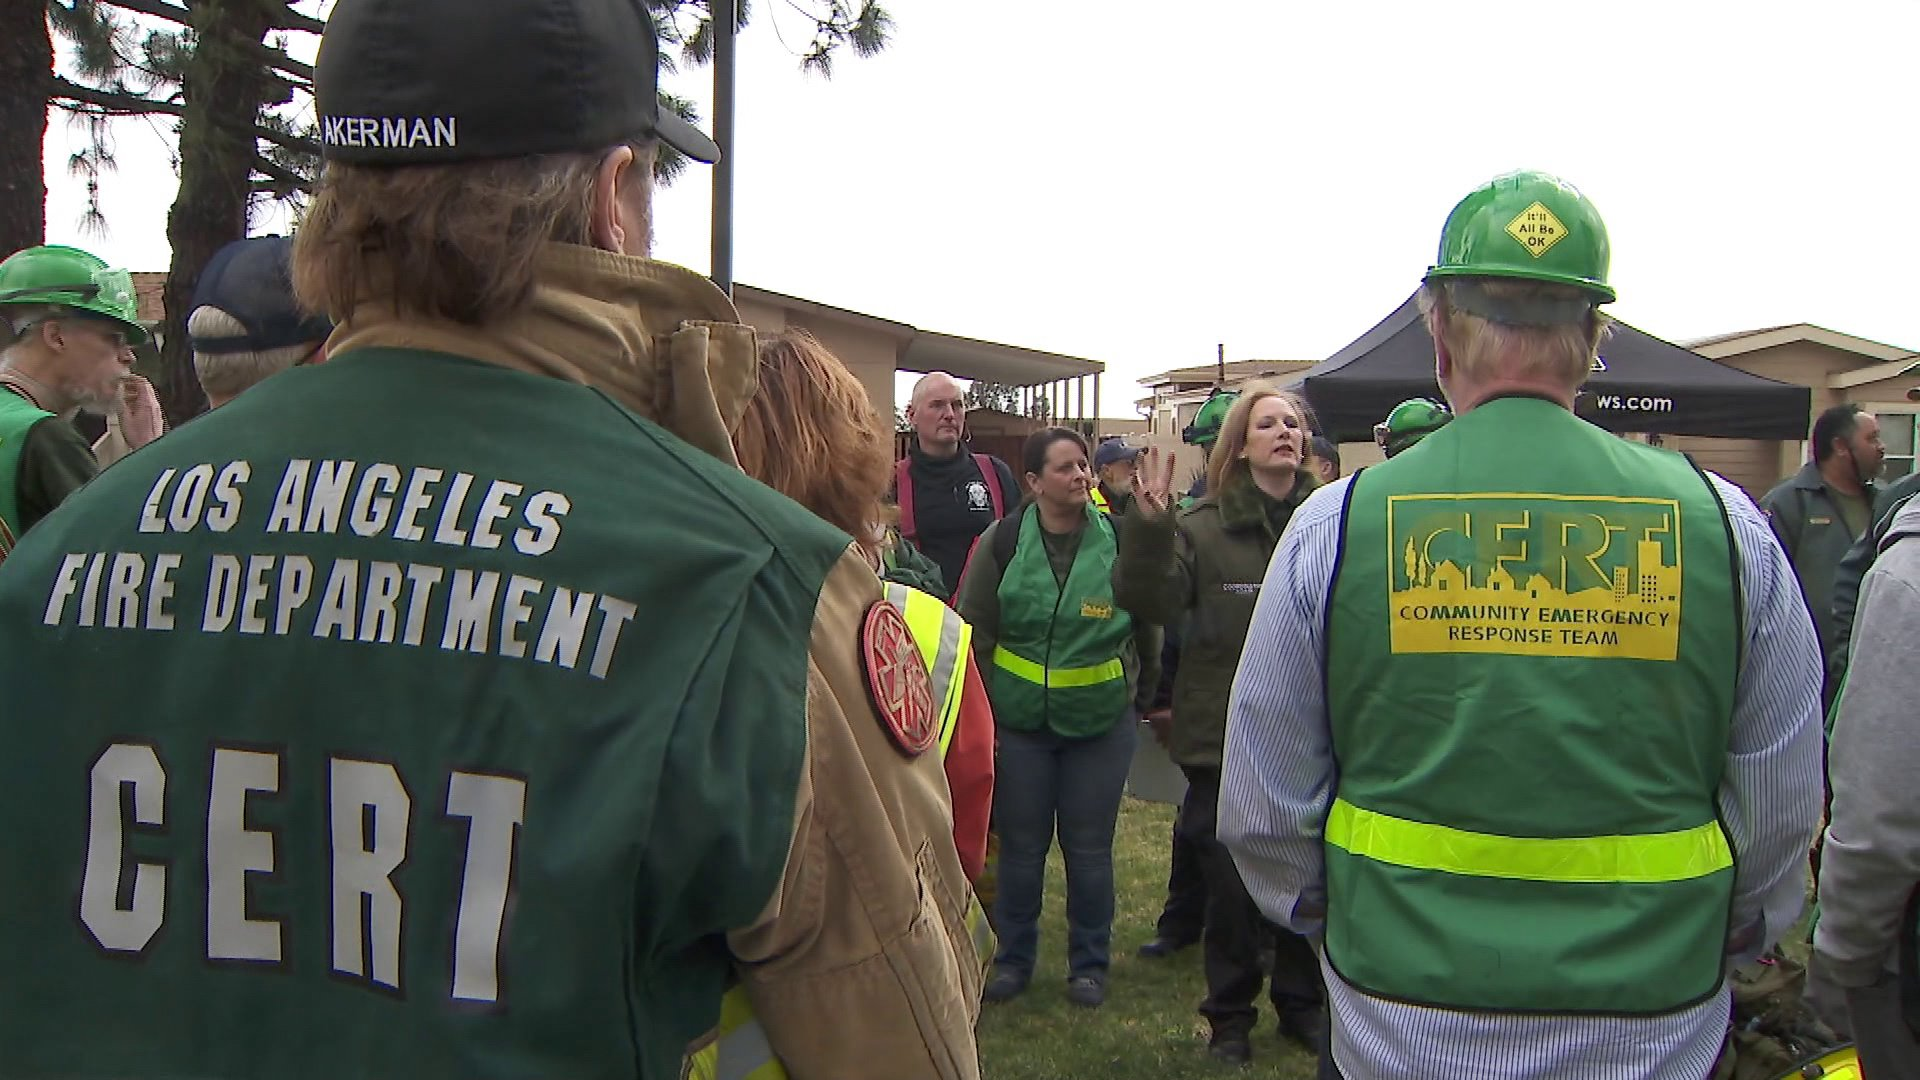 Los Angeles Fire Department officials an Community Emergency Response Team volunteers took part in a massive earthquake drill in Sylmar on March 9, 2019. (Credit: KTLA)